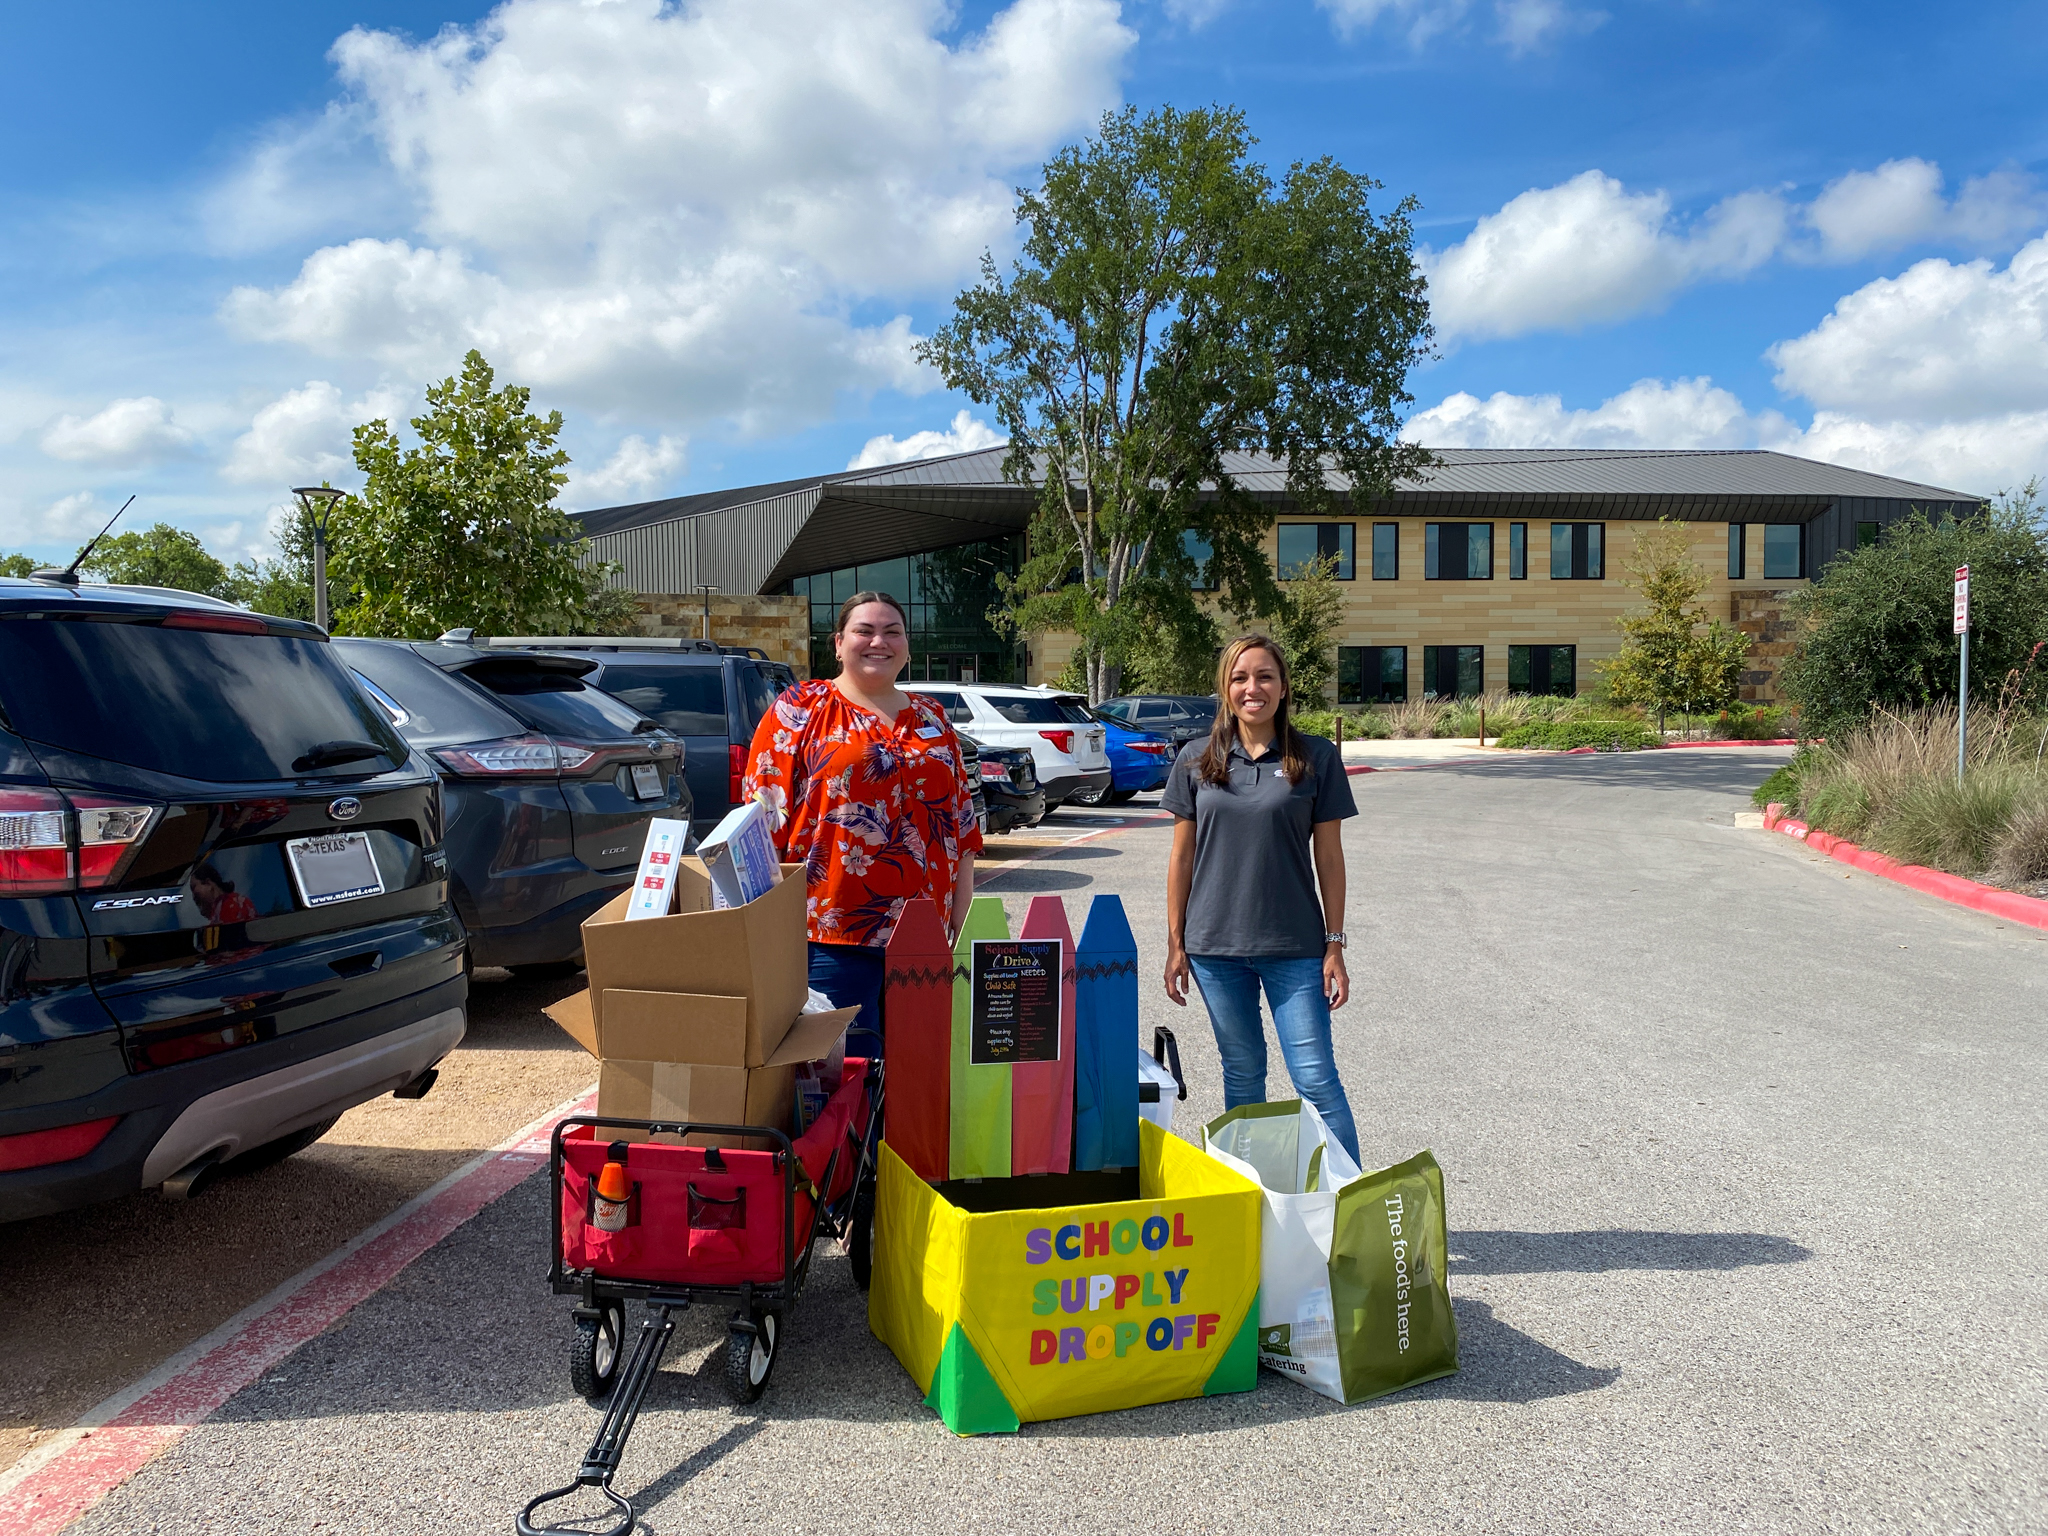 CDS Muery and ChildSafe representatives surrounded by the school supplies donations at ChildSafe.